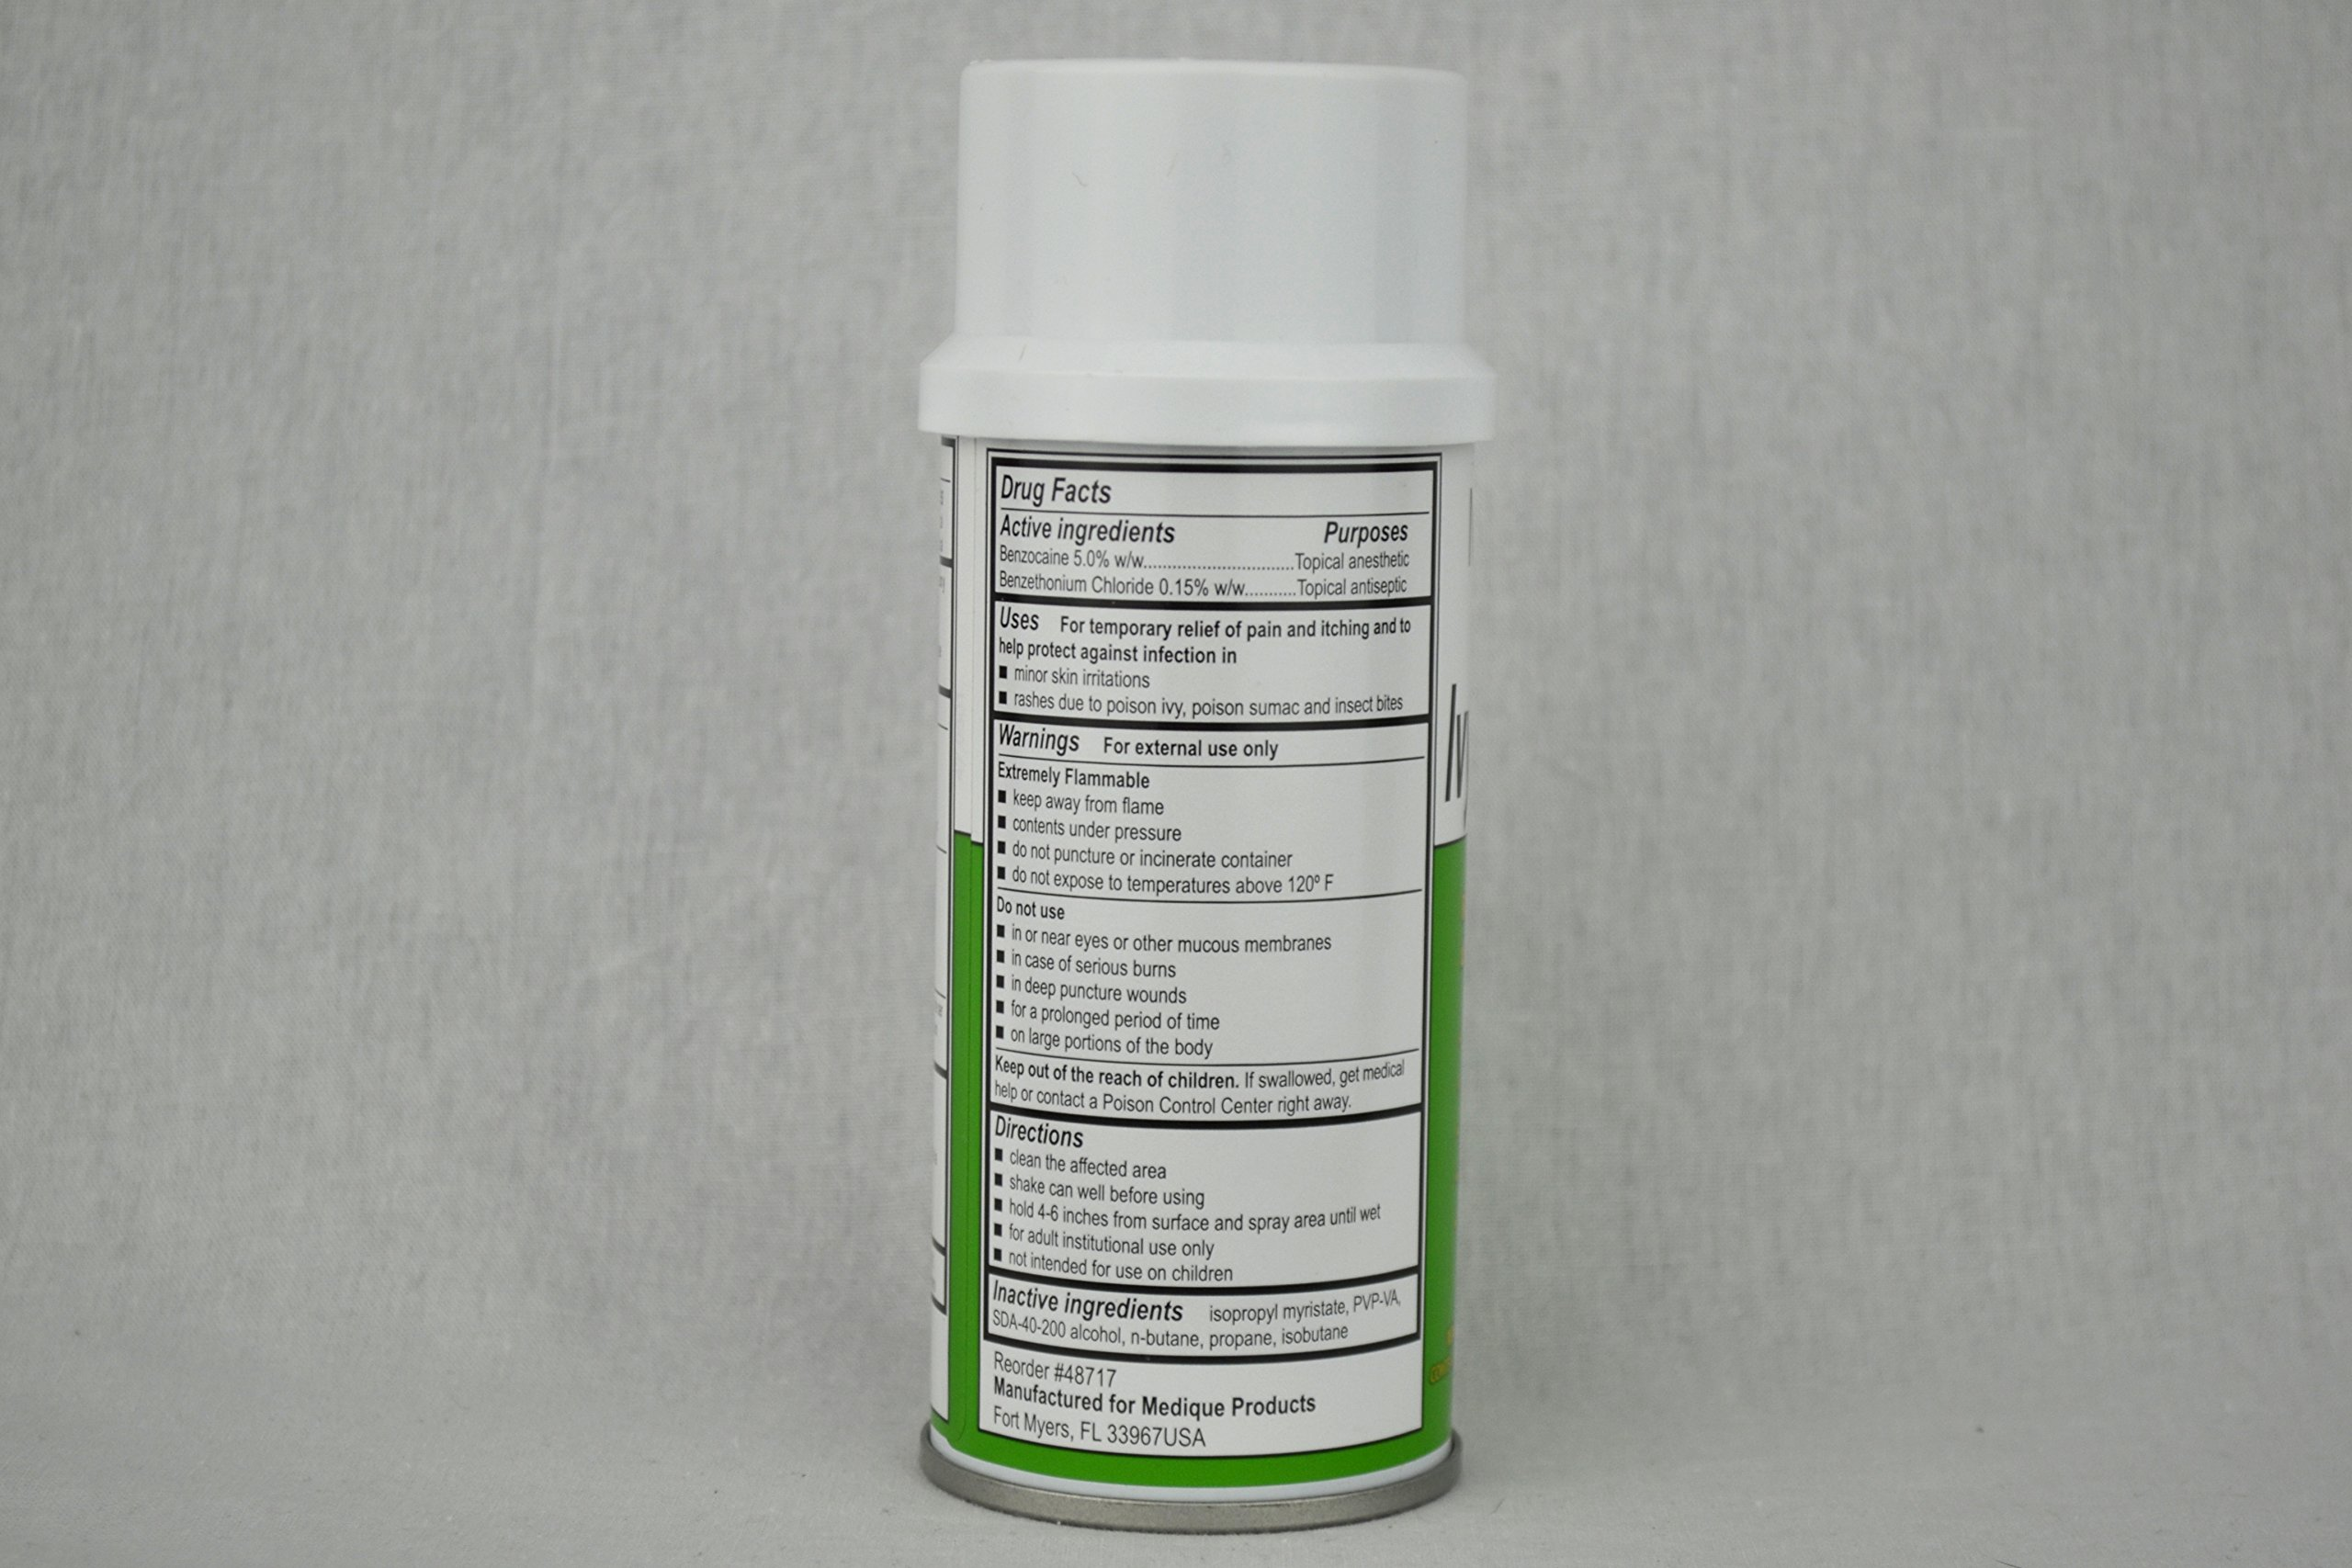 IVY-Rid Relief of Itching and Discomfort 3 oz. Spray 6 Each by Medique - MS60255